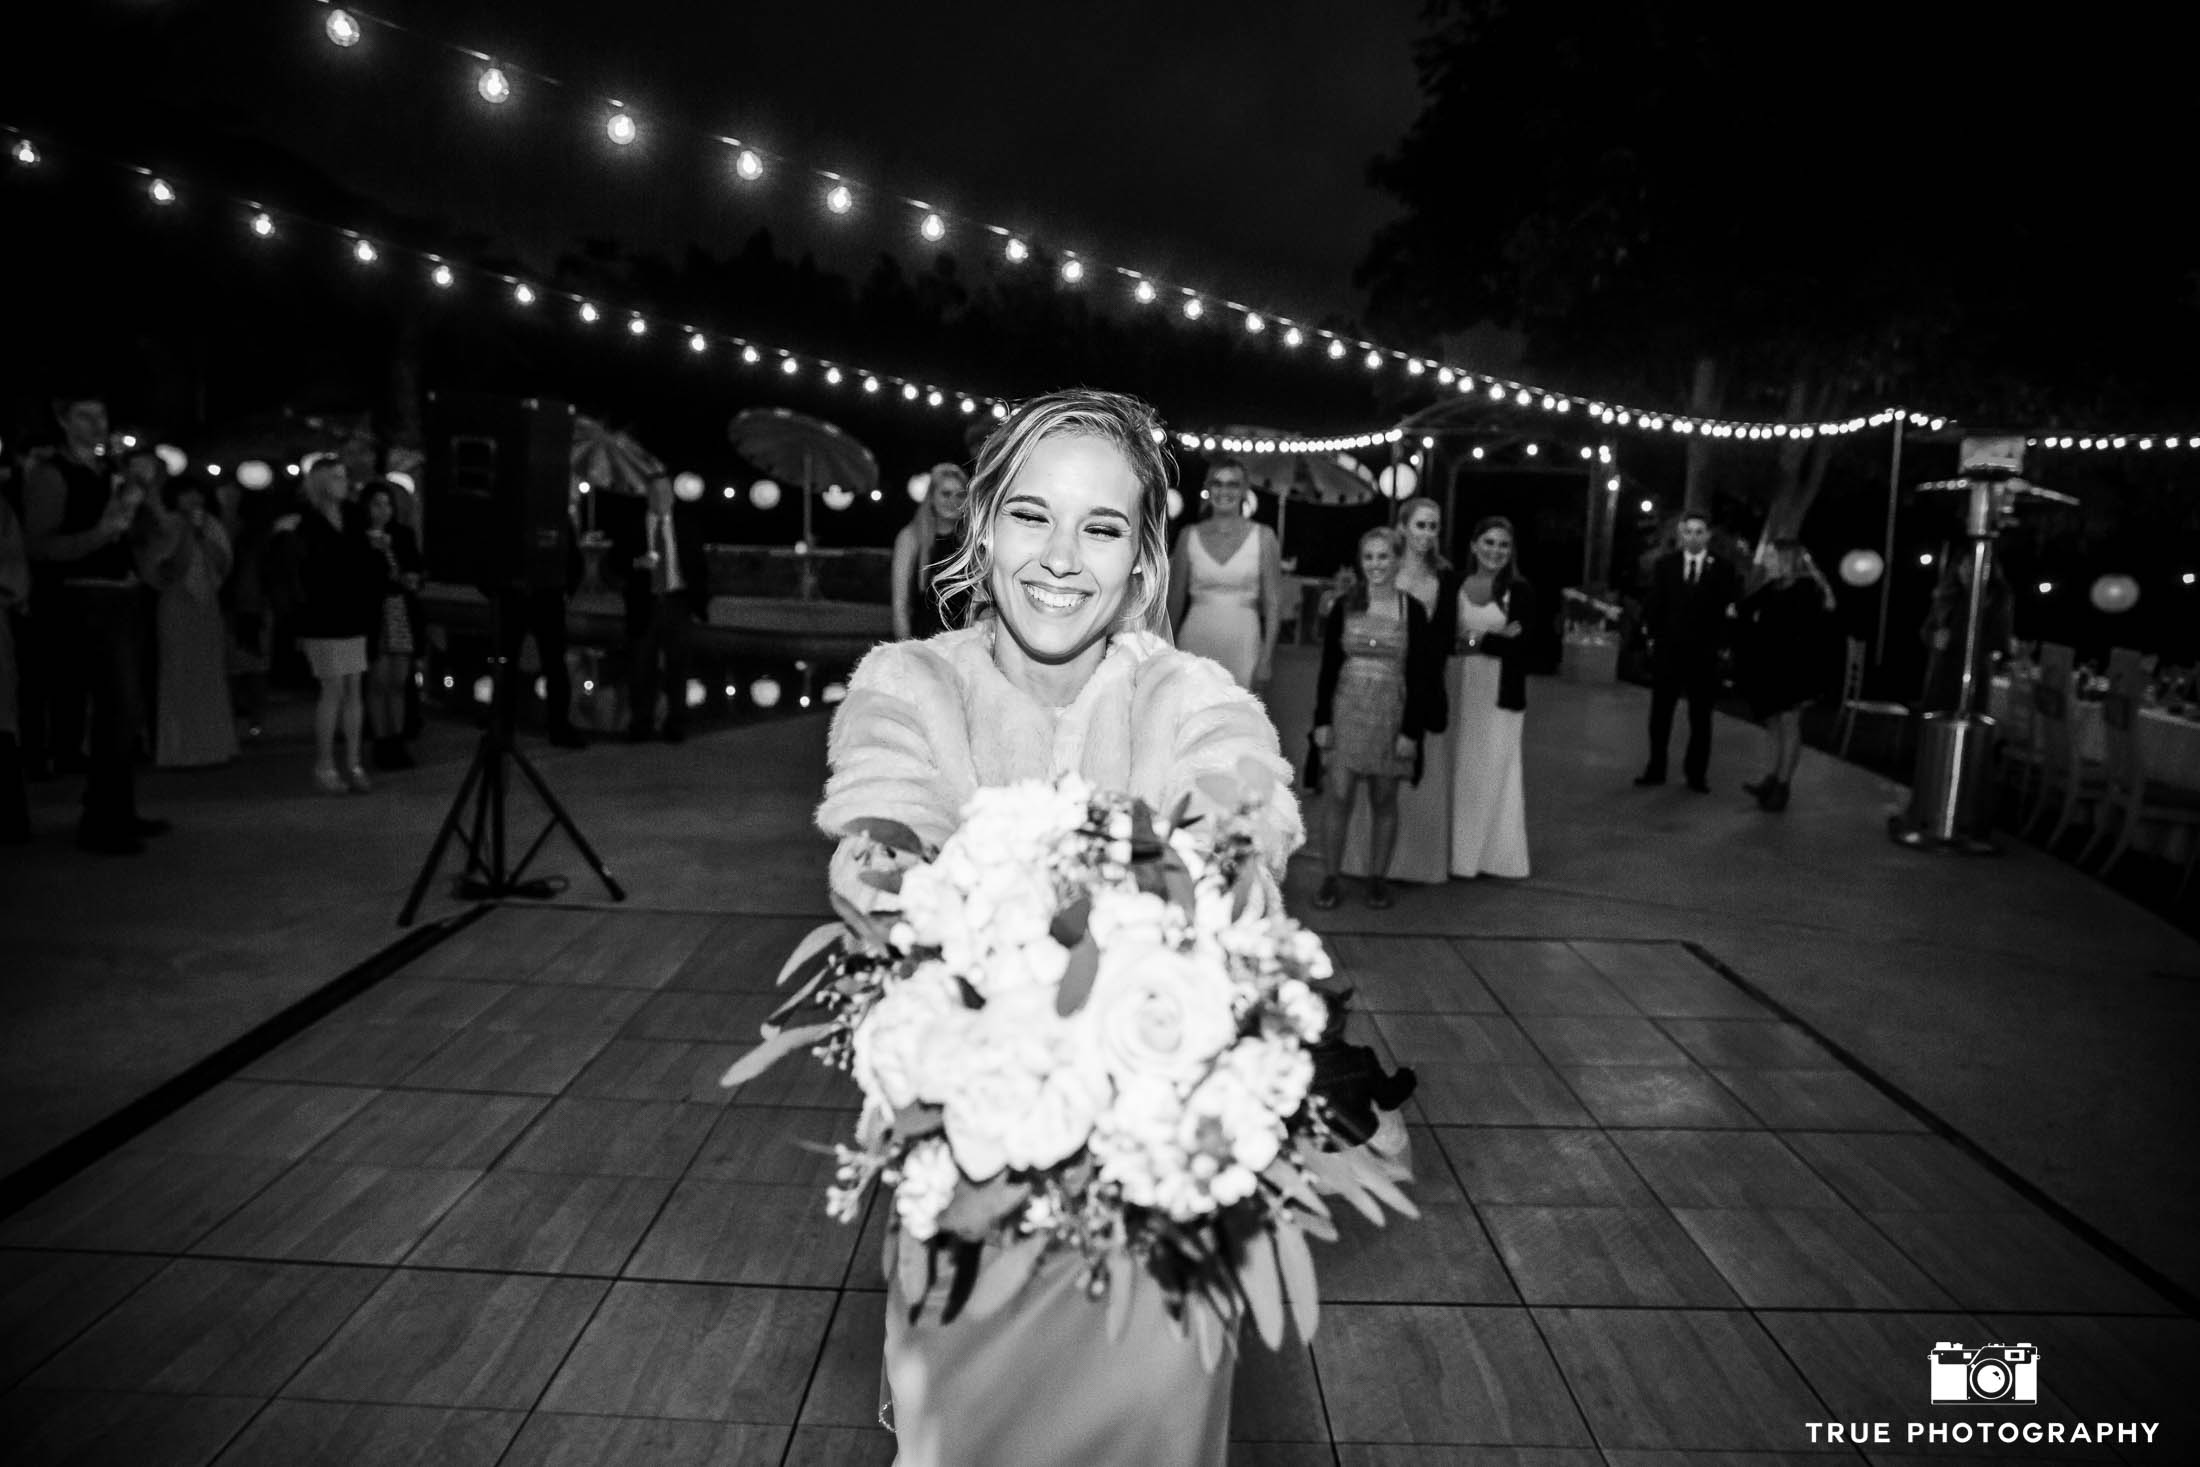 Bride prepares to toss bouquet during outdoor reception